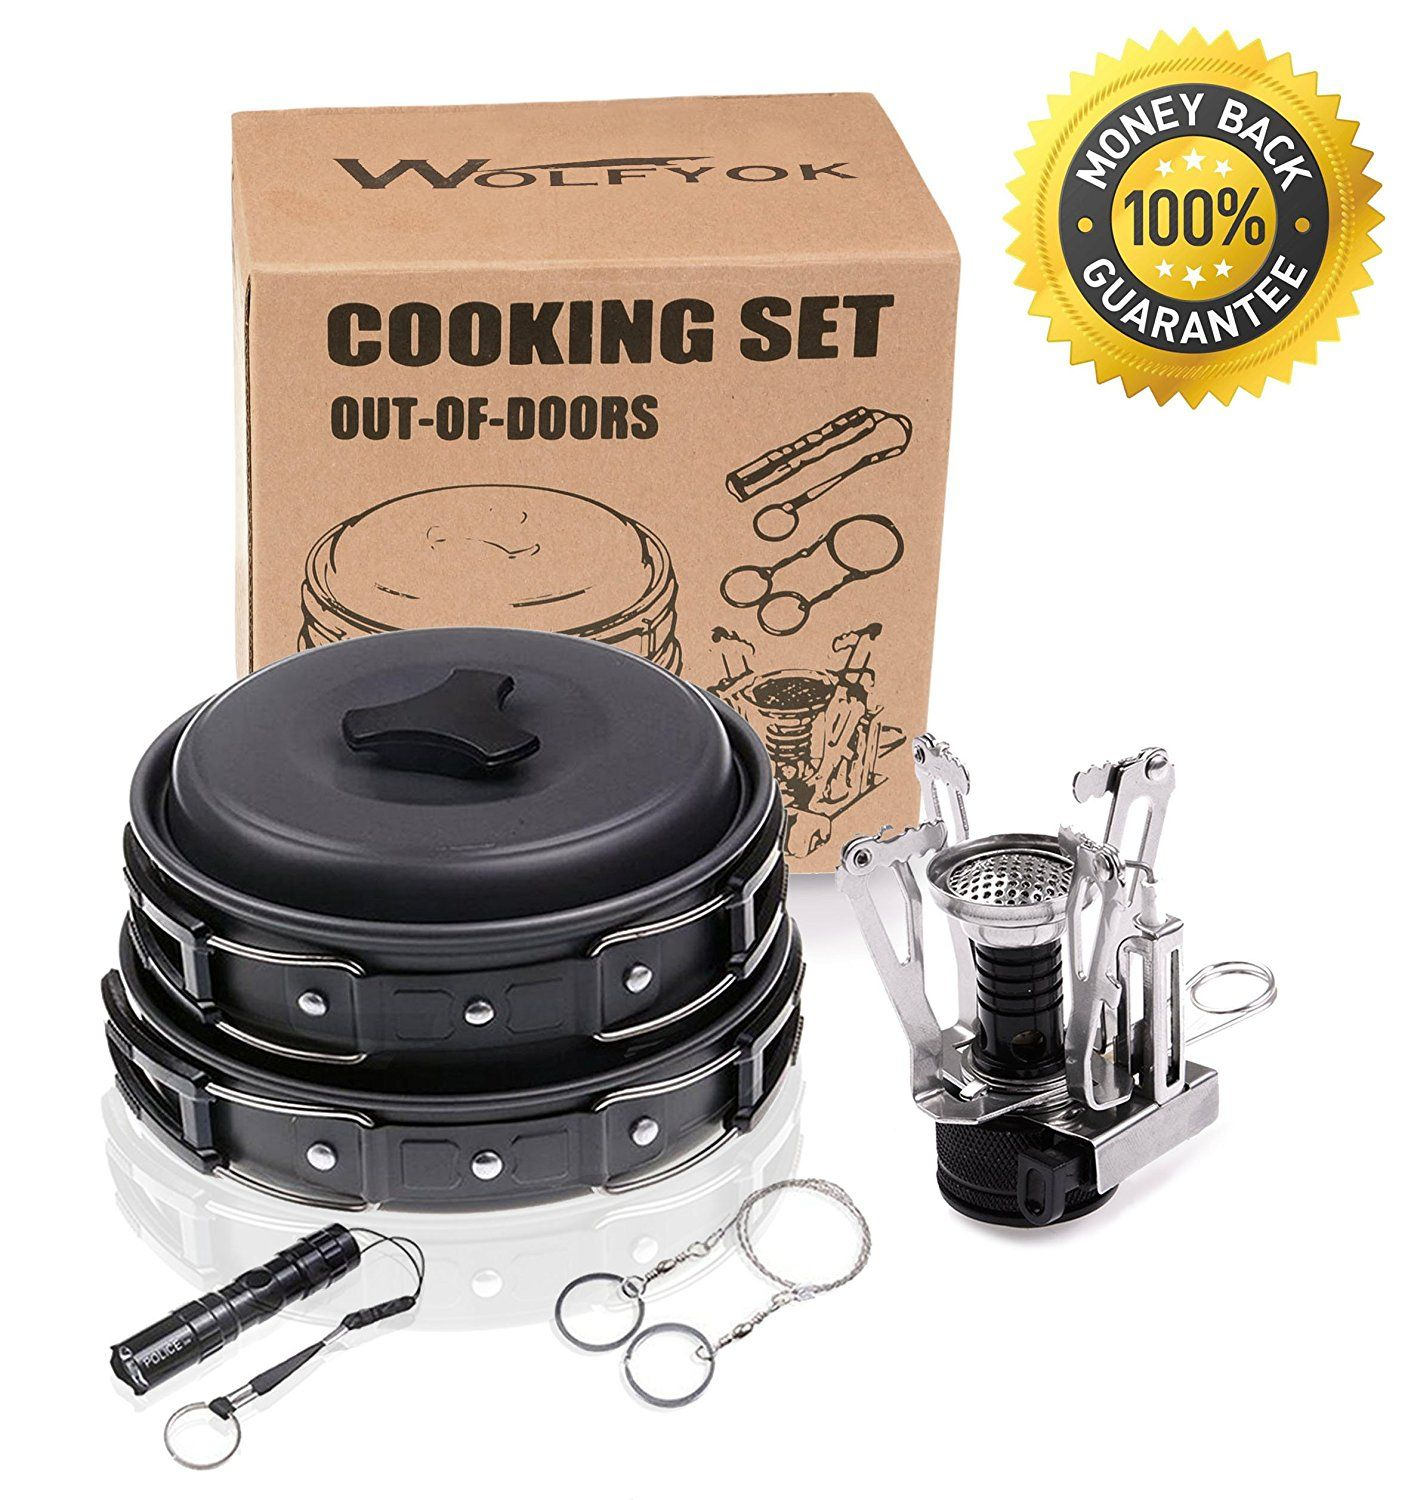 Wolfyok Outdoor Cookware Set Bundle with Mini Camping Stove